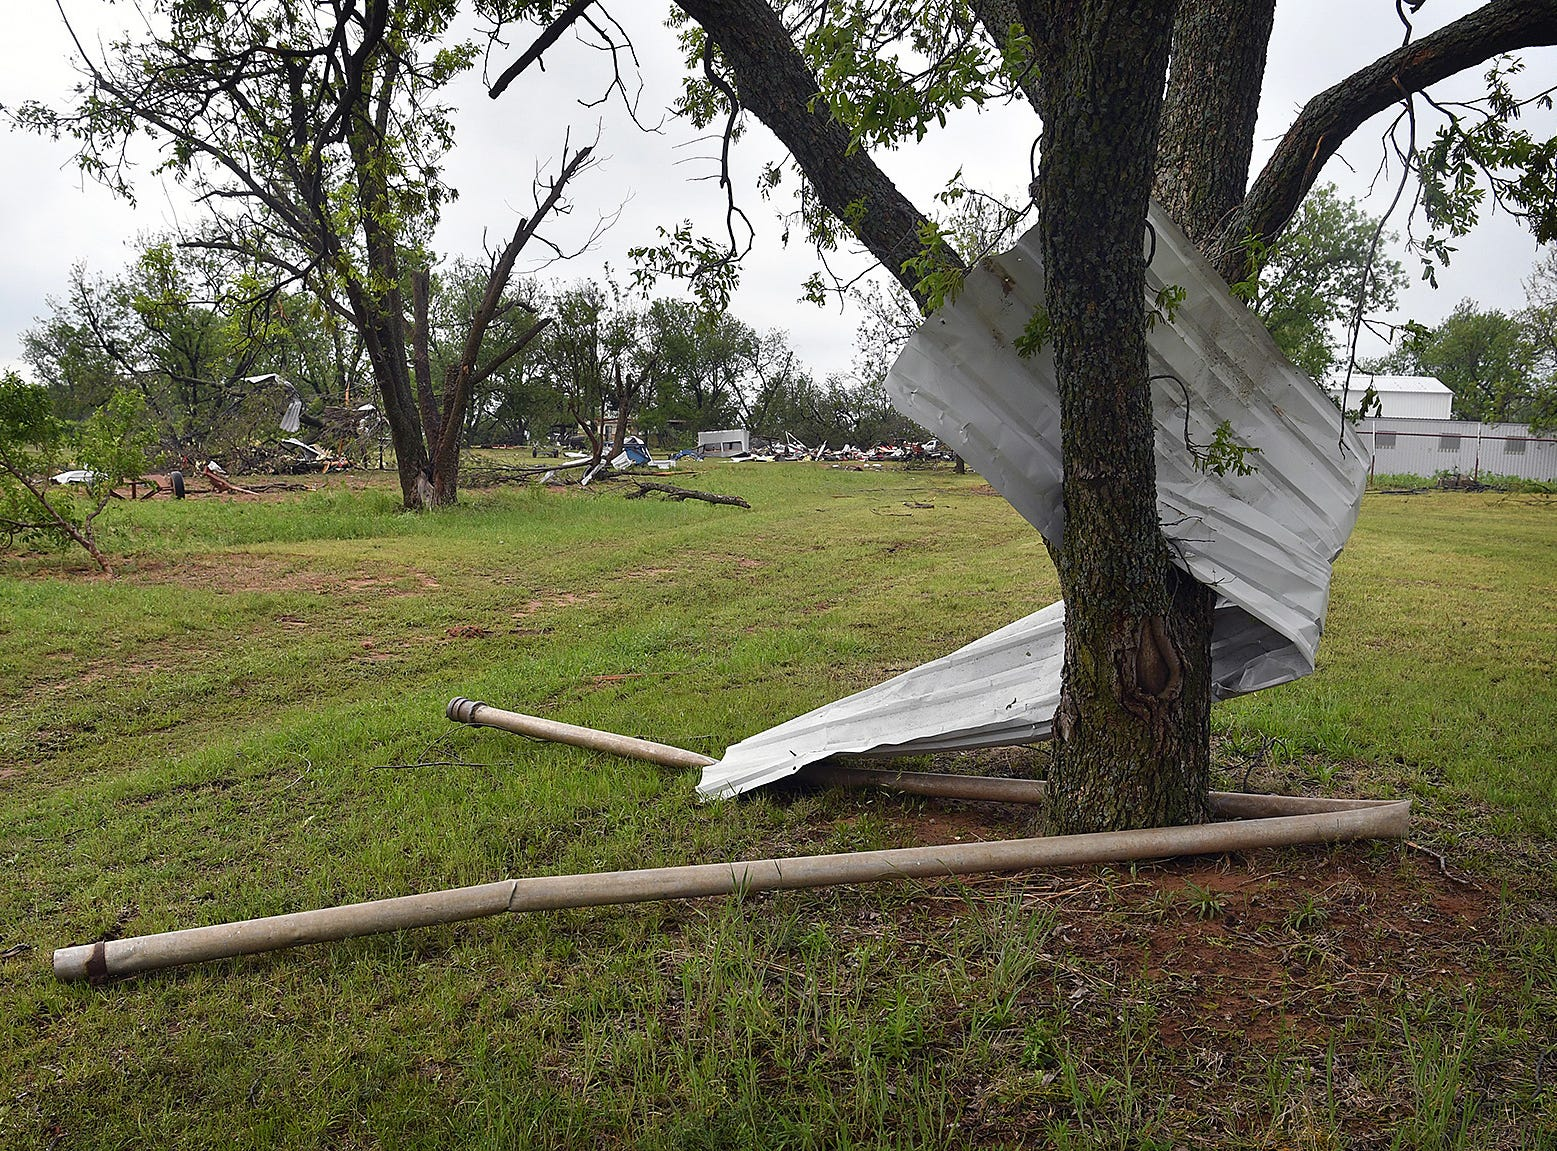 Debris from farm buildings destroyed by a tornado at Jetton Farms are lodged in trees all over the property in Charlie, Texas.